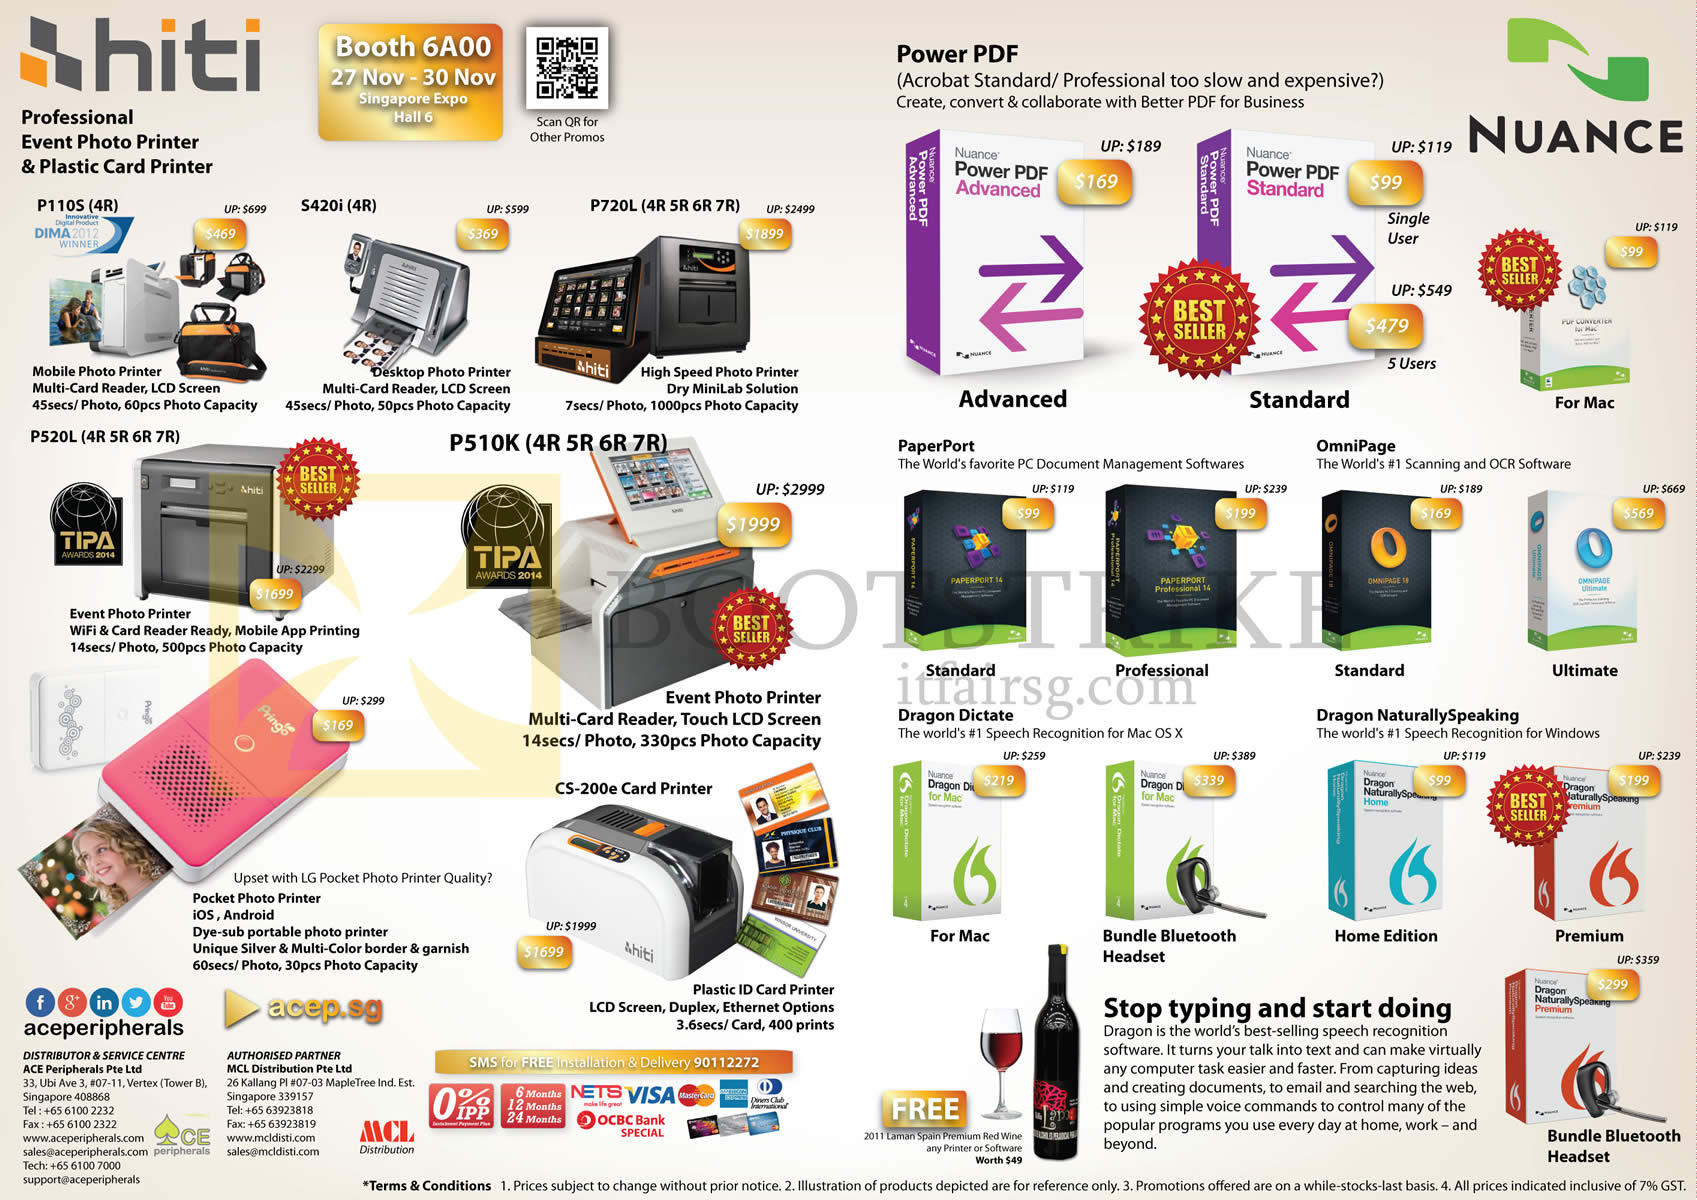 SITEX 2014 price list image brochure of Ace Peripherals Asustor HiTi Nuance Synology Power PDF, PaperPort, Dragon Dictate, Dragon Naturally Speaking